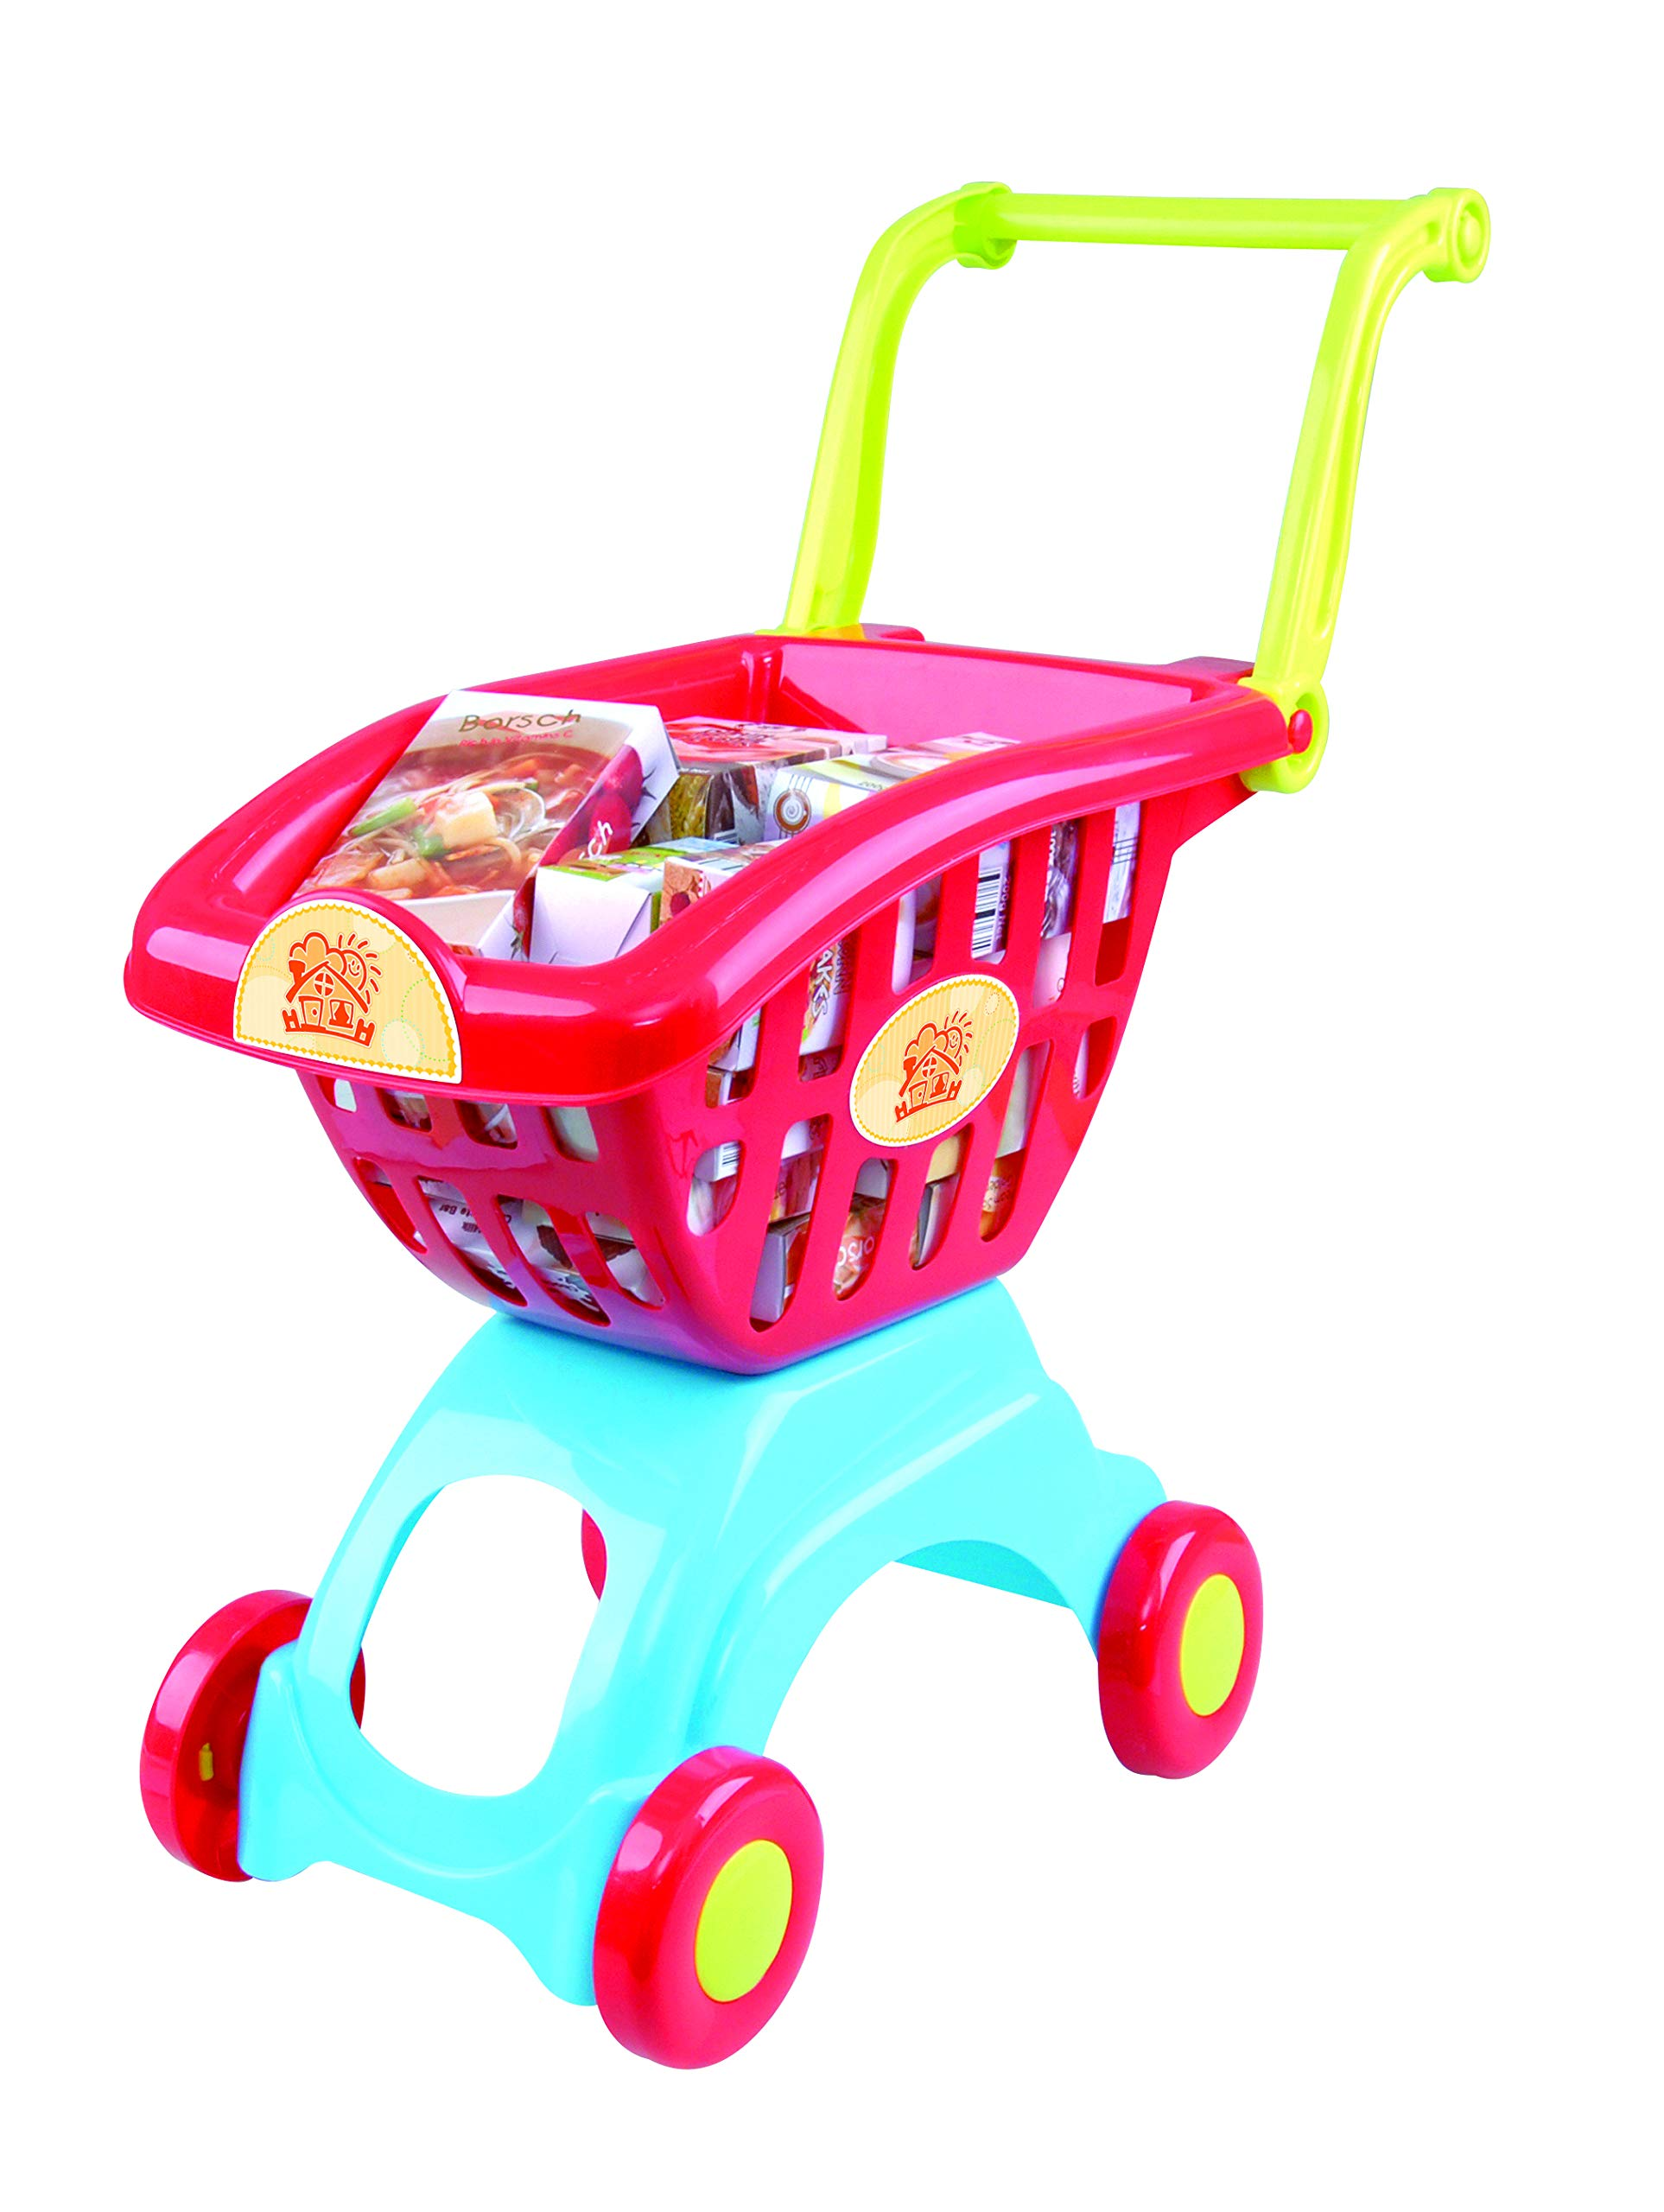 PlayGo Lightweight Shopping Cart Toy 18 Pc Set with Adjustable Handle Pretend Play for Toddler Kids Age 3 Years & Up by PlayGo